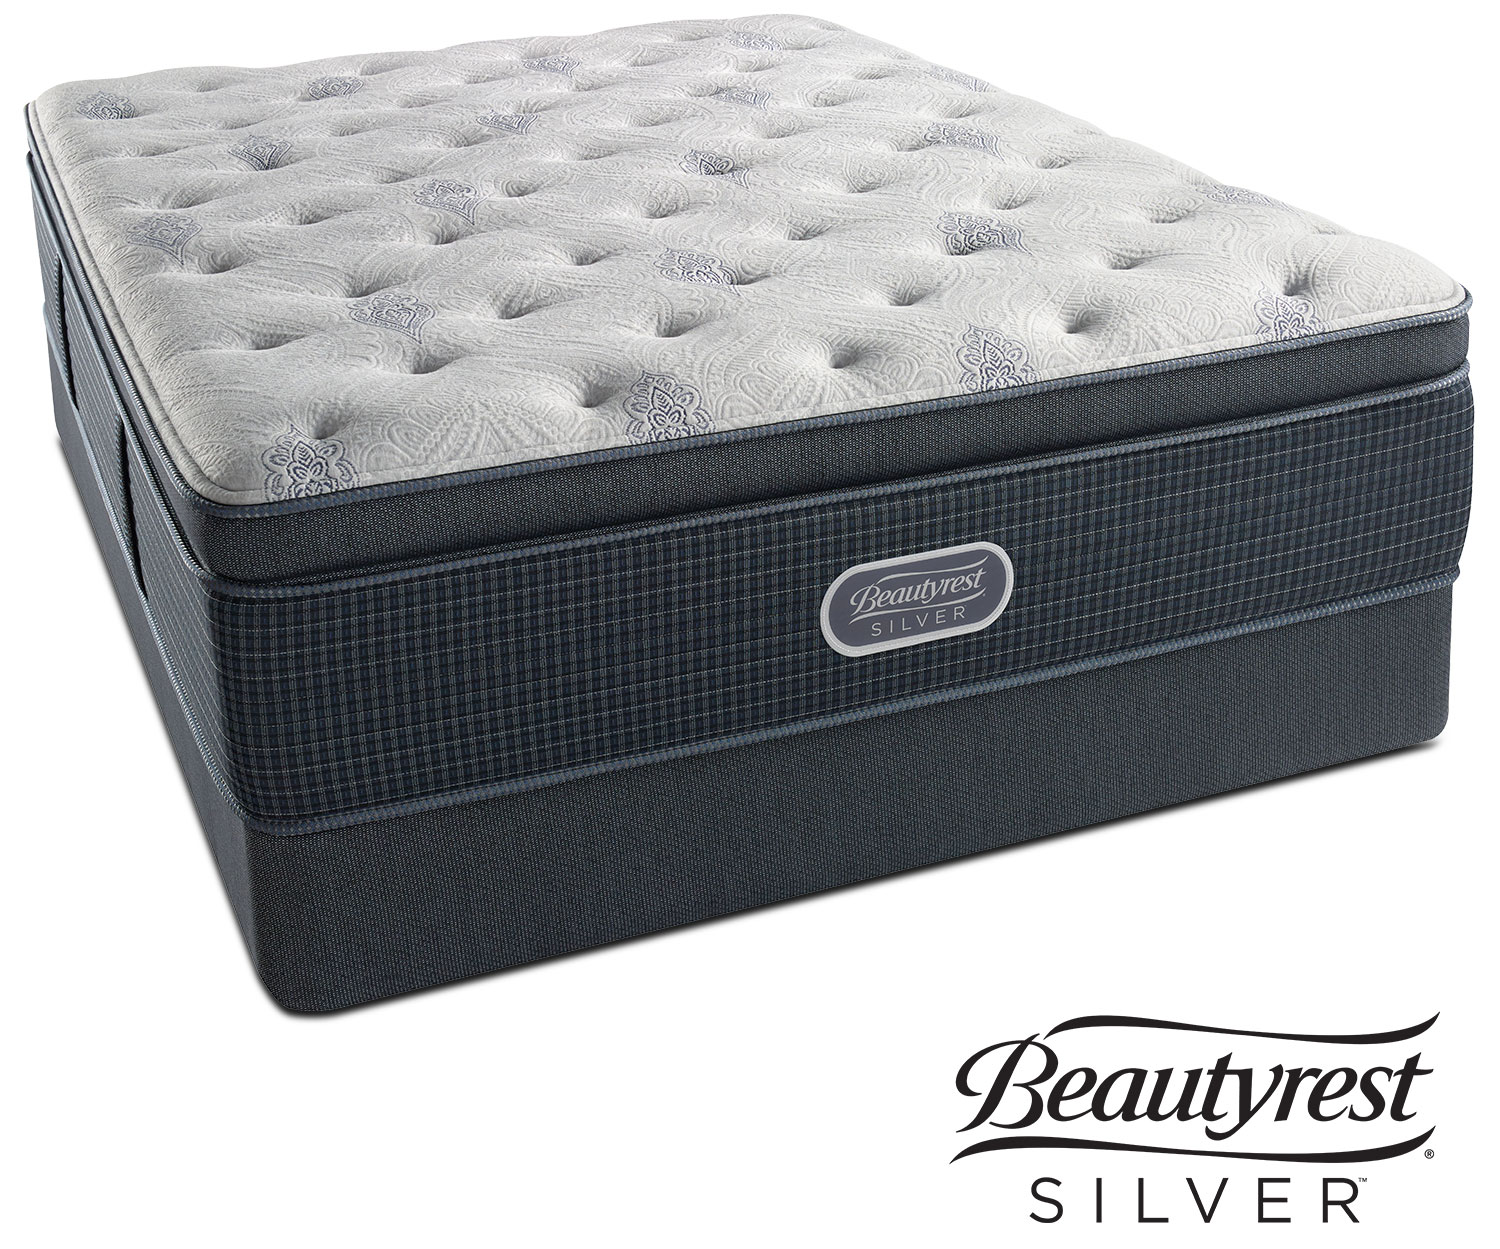 Mattresses and Bedding - Crystal Ridge Luxury Firm Pillowtop Full Mattress and Low-Profile Foundation Set